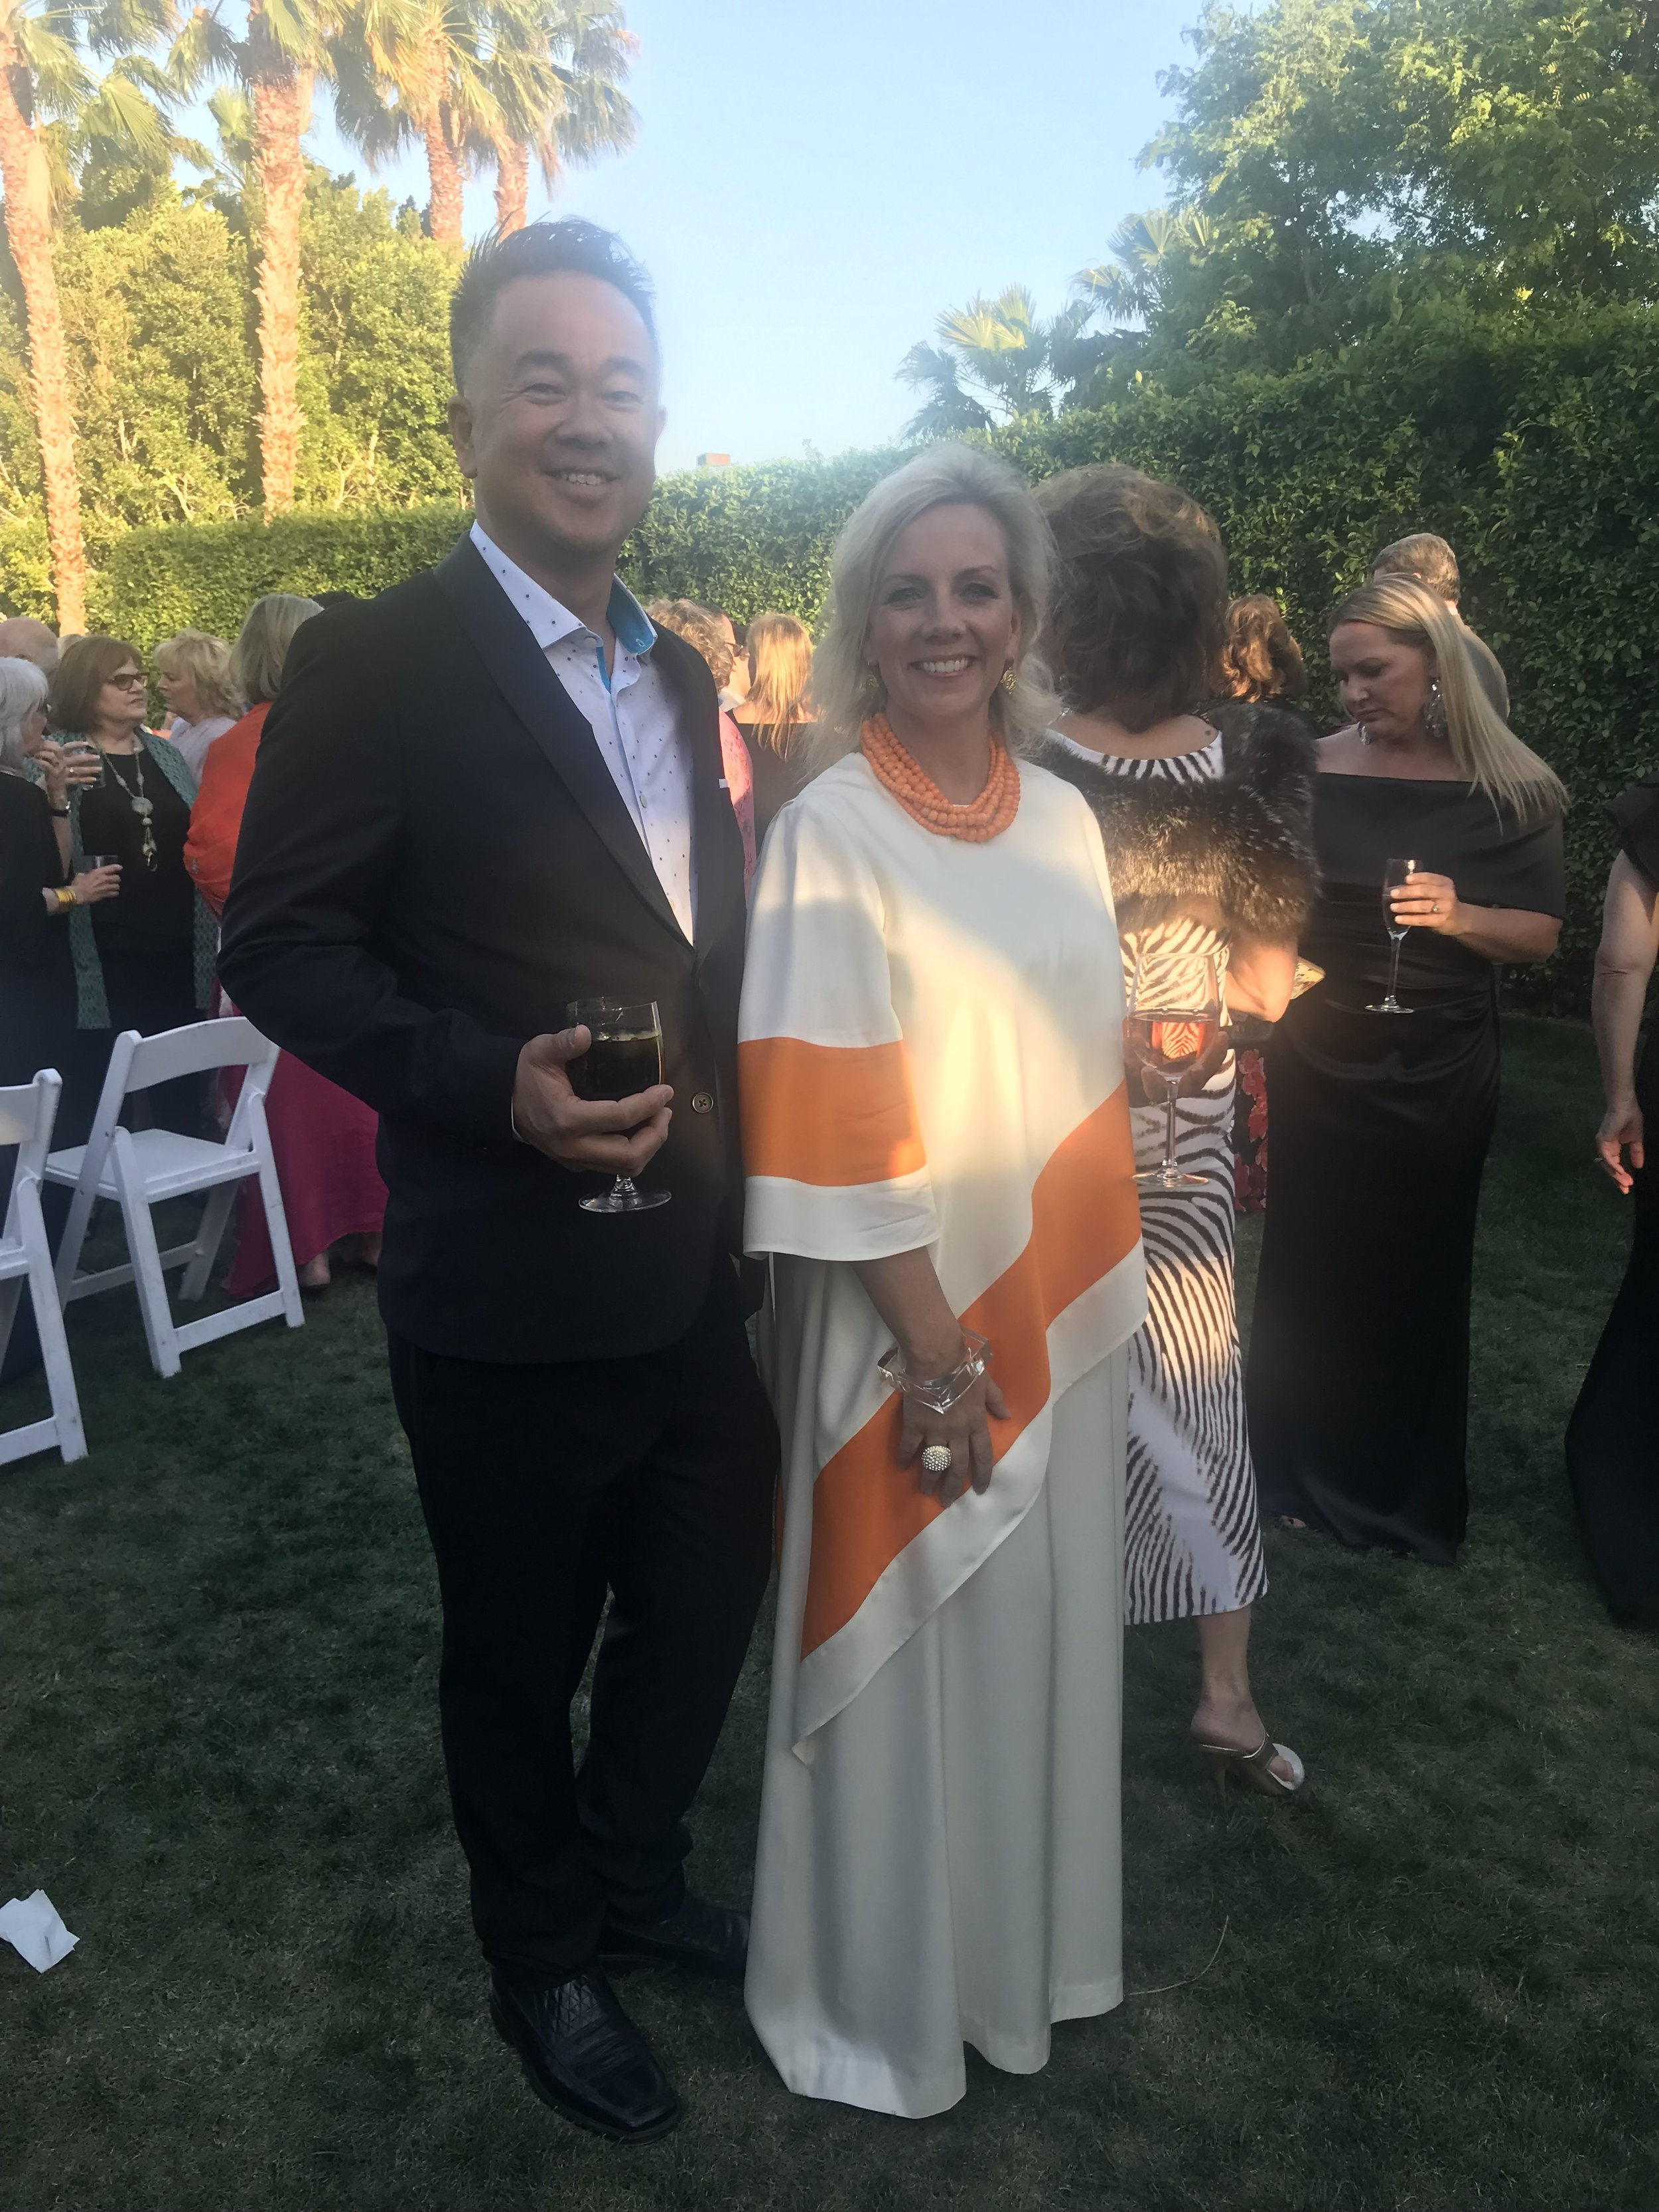 Oakland-based interior designer Nicole Yee,  with her hubs Kingman, took home several top honors.